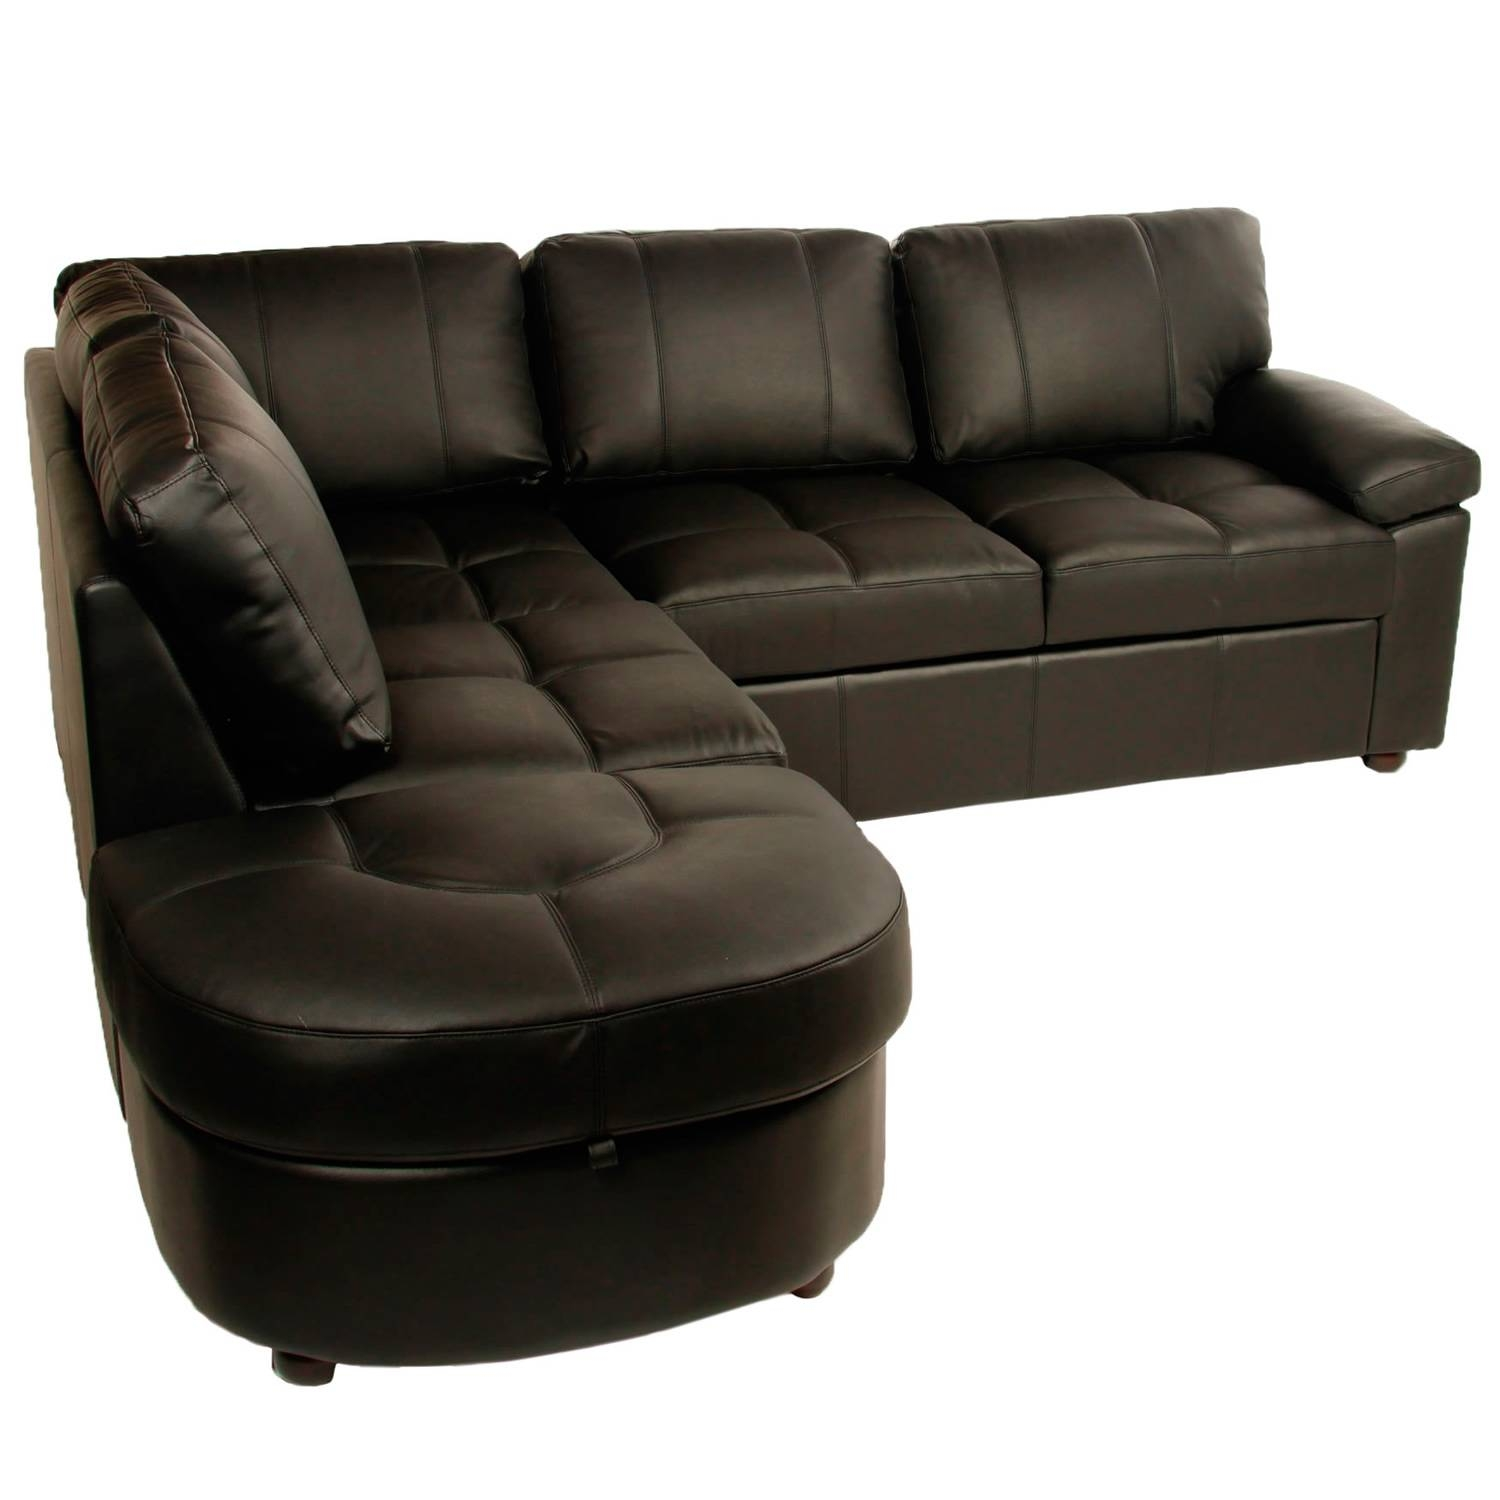 Sofa Bed Leather Corner | Tehranmix Decoration throughout Leather Sofa Beds With Storage (Image 24 of 30)